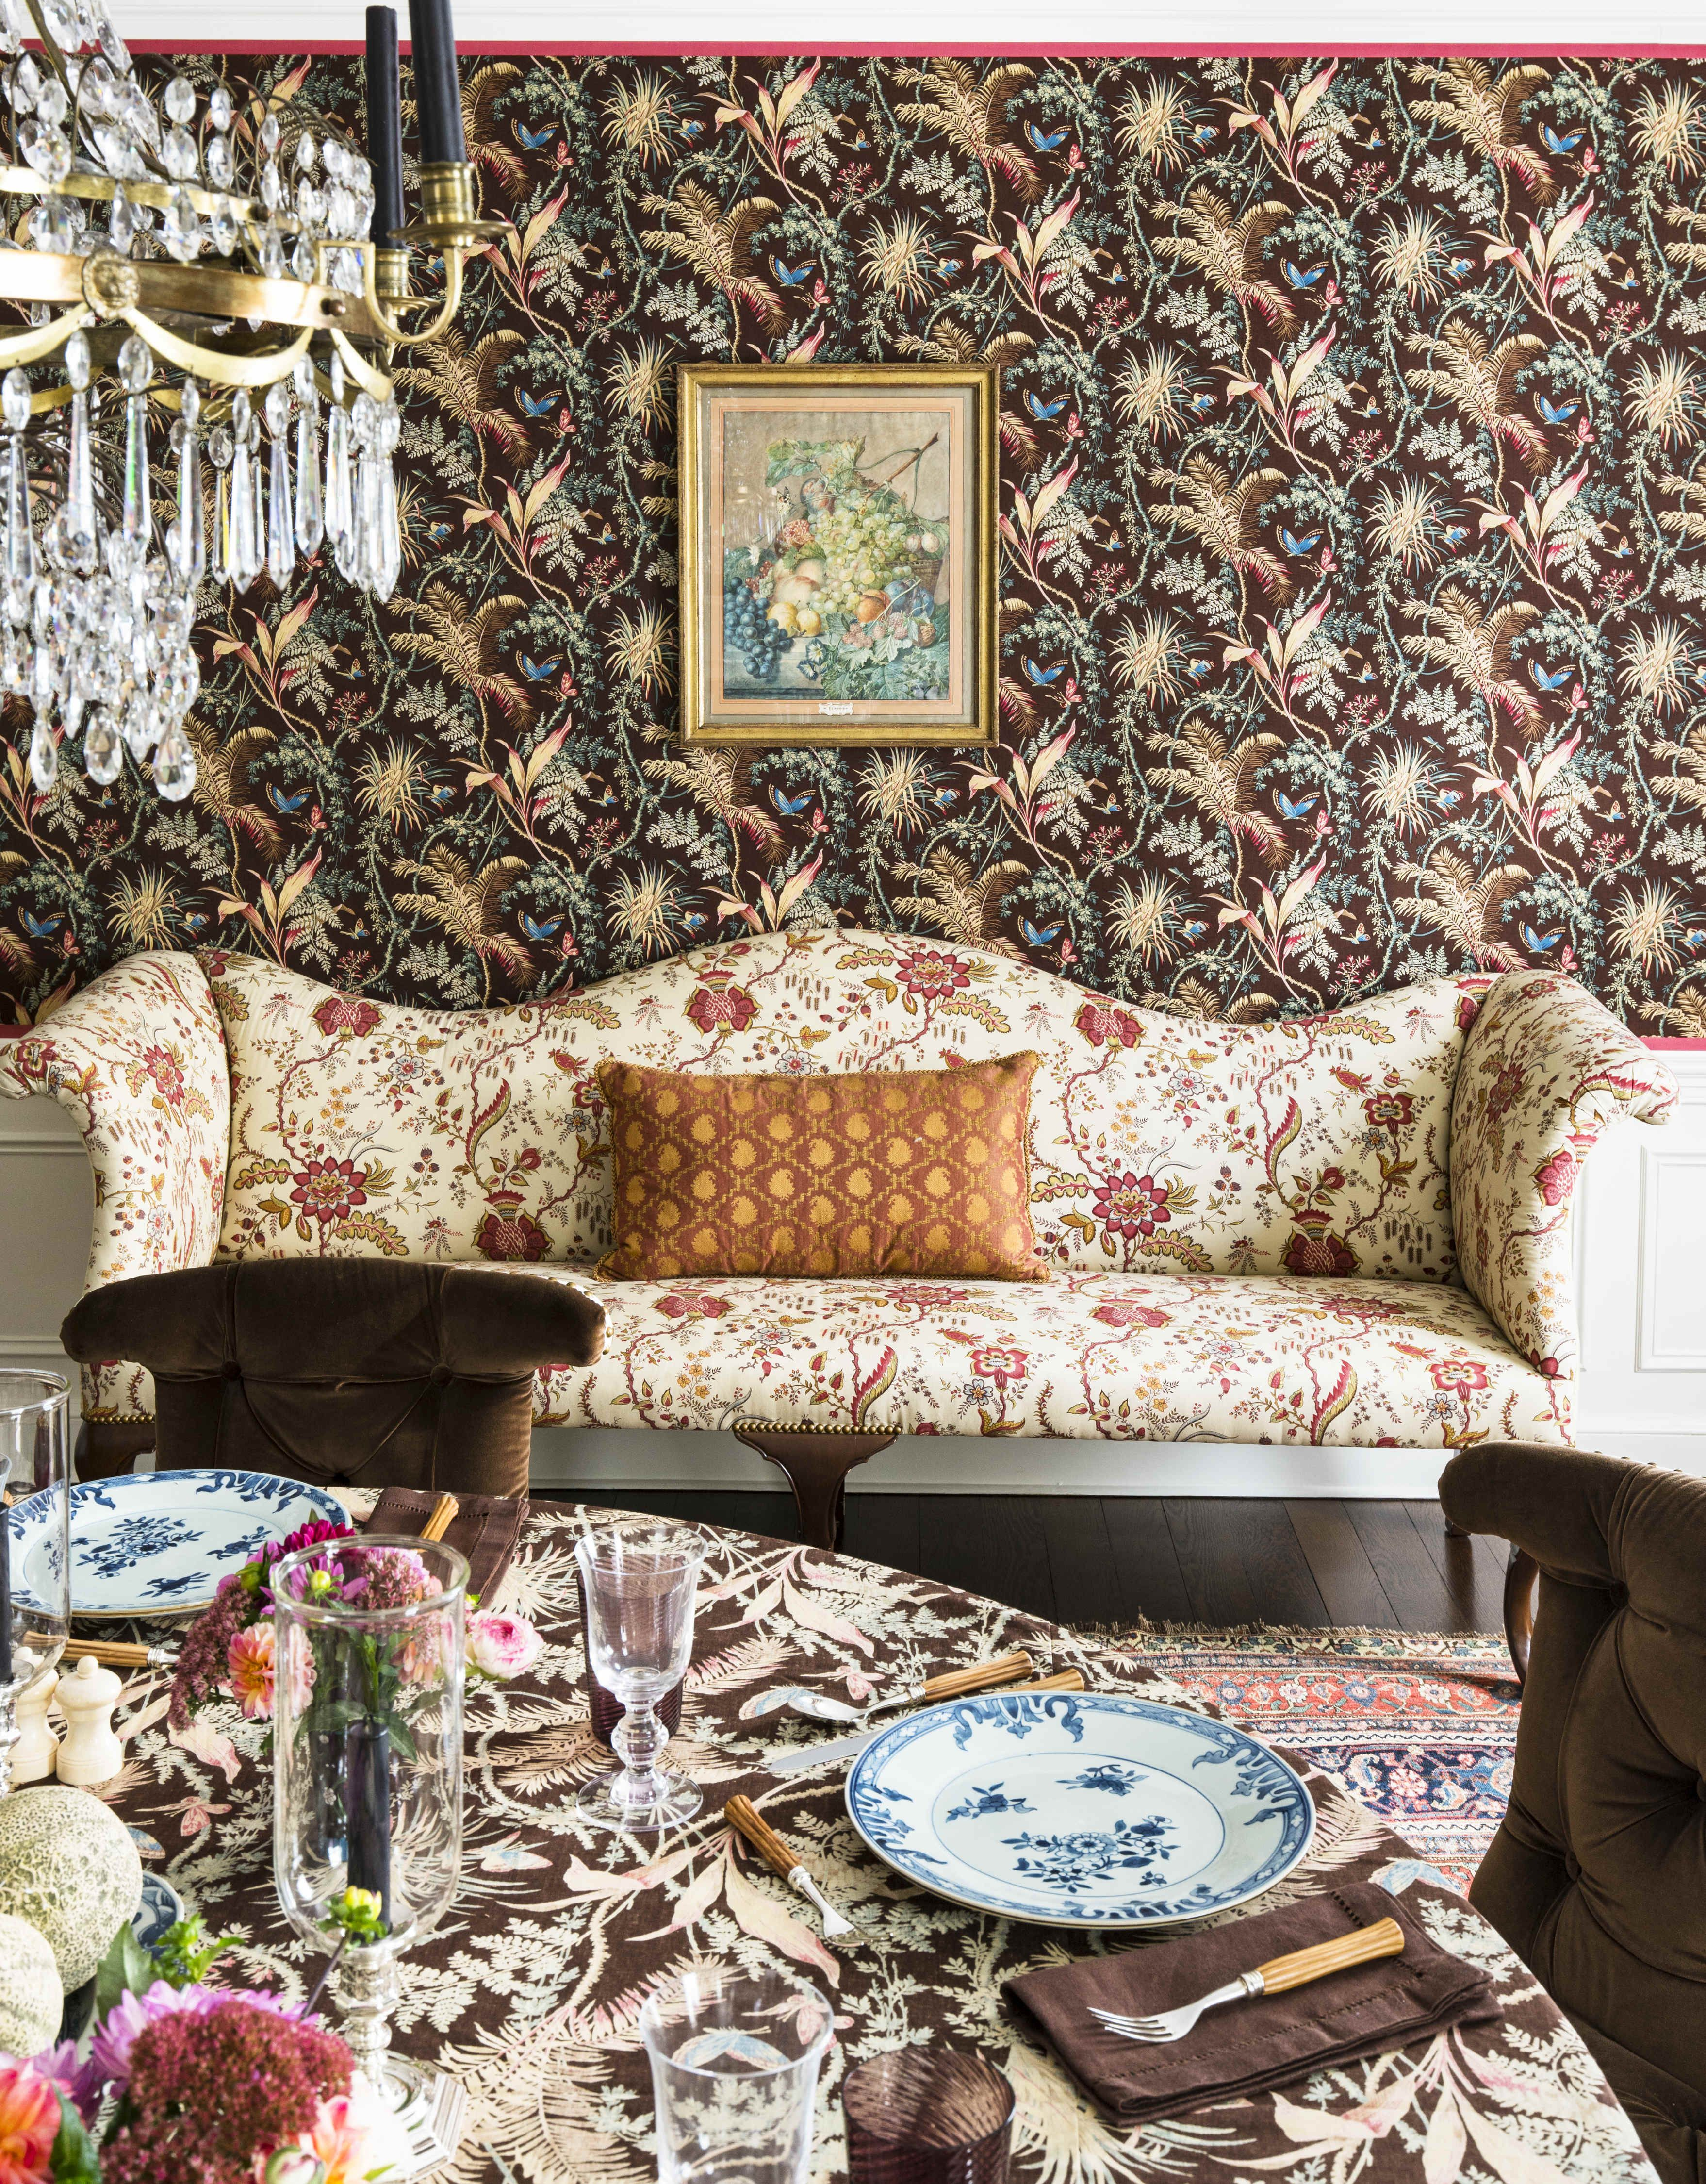 Top Interior Design Trends For 2021 New Home Decor For 2021